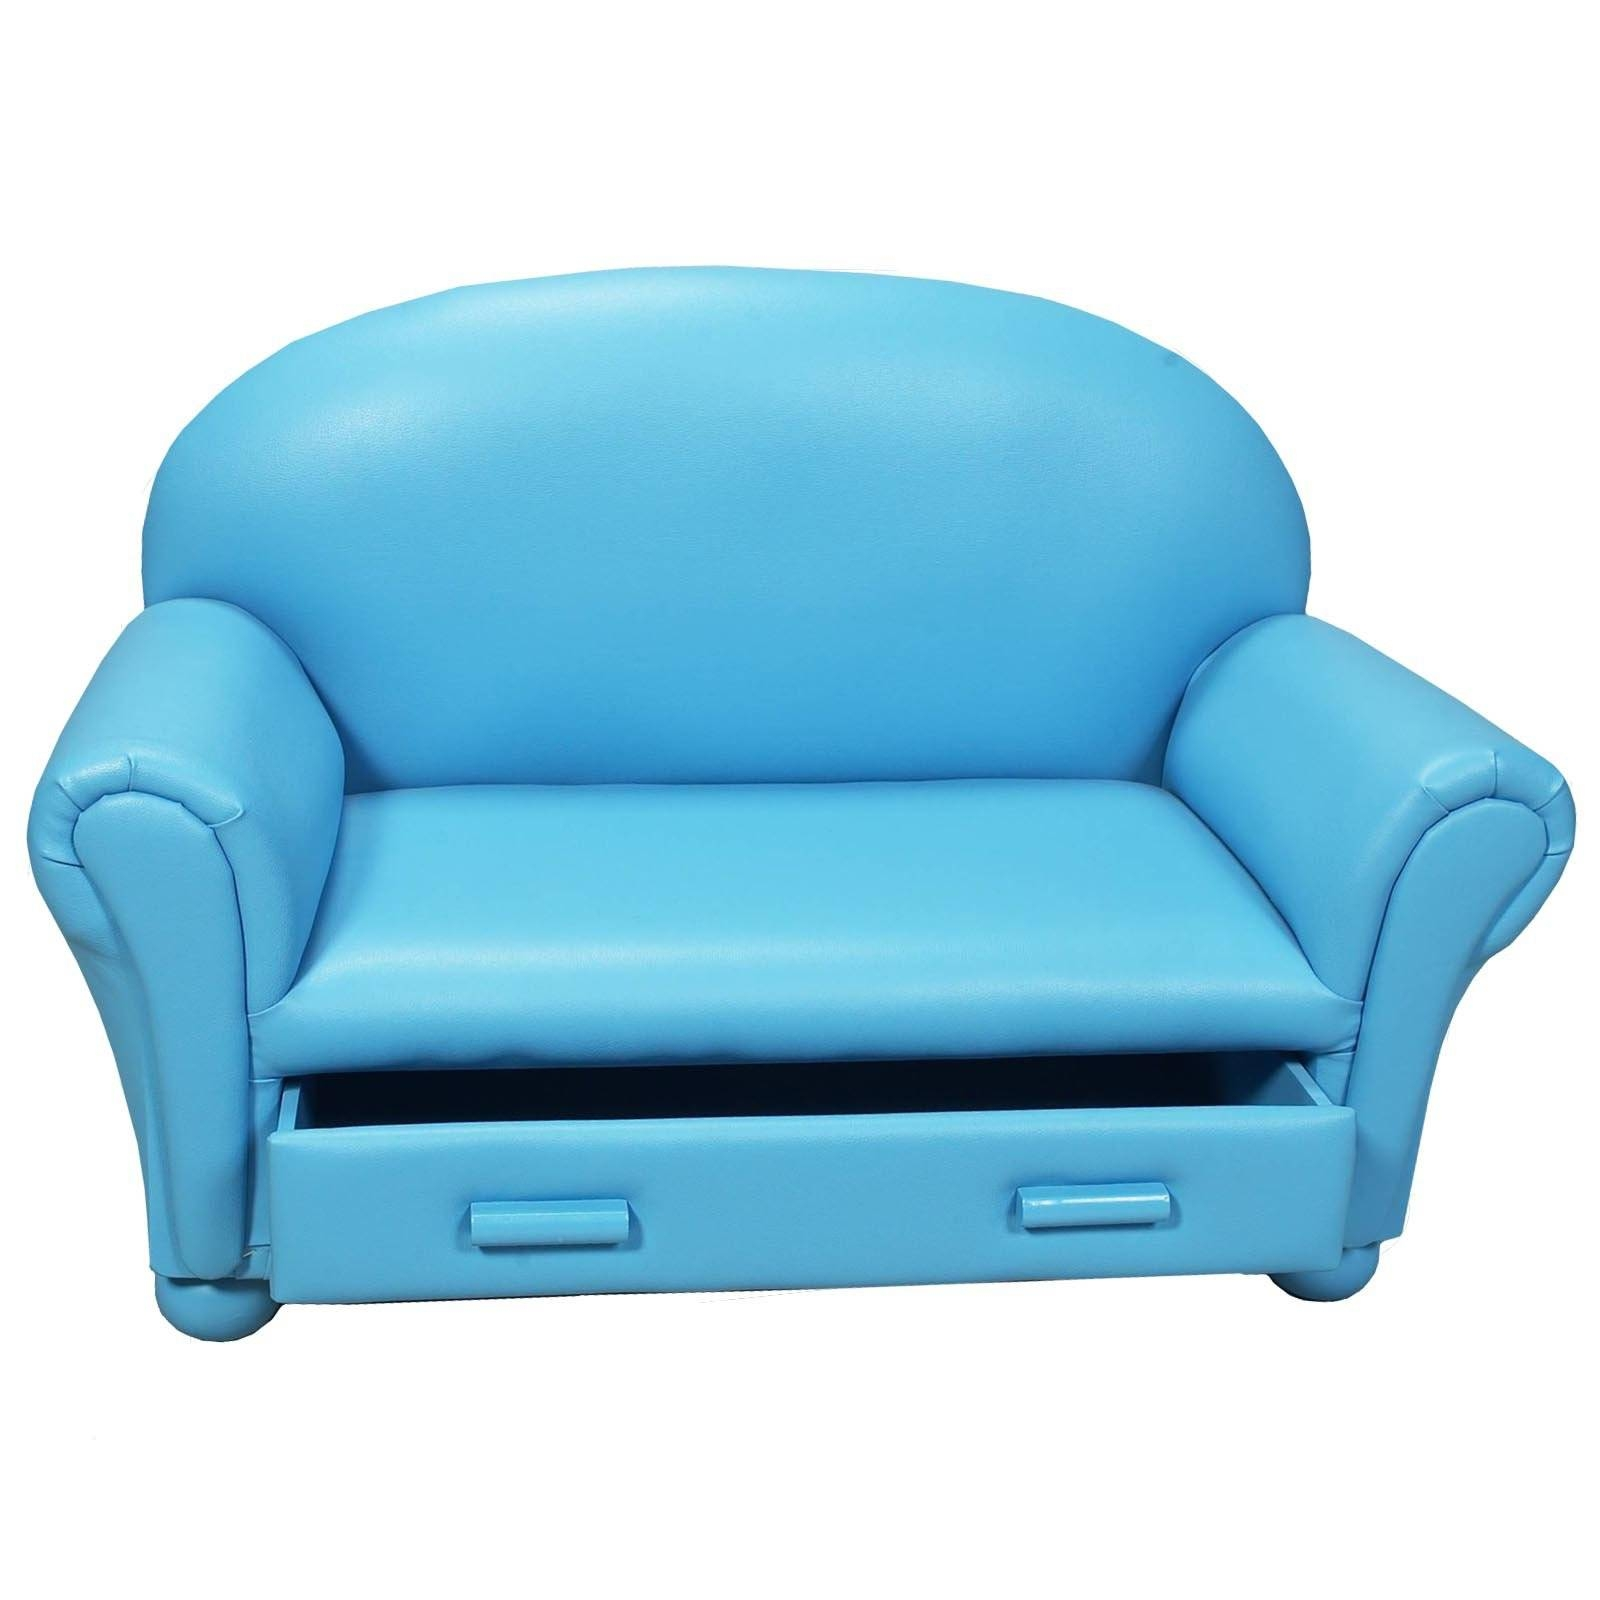 Furniture Home: Childrens Sofa With Storage Drawer Kids throughout Children Sofa Chairs (Image 8 of 30)